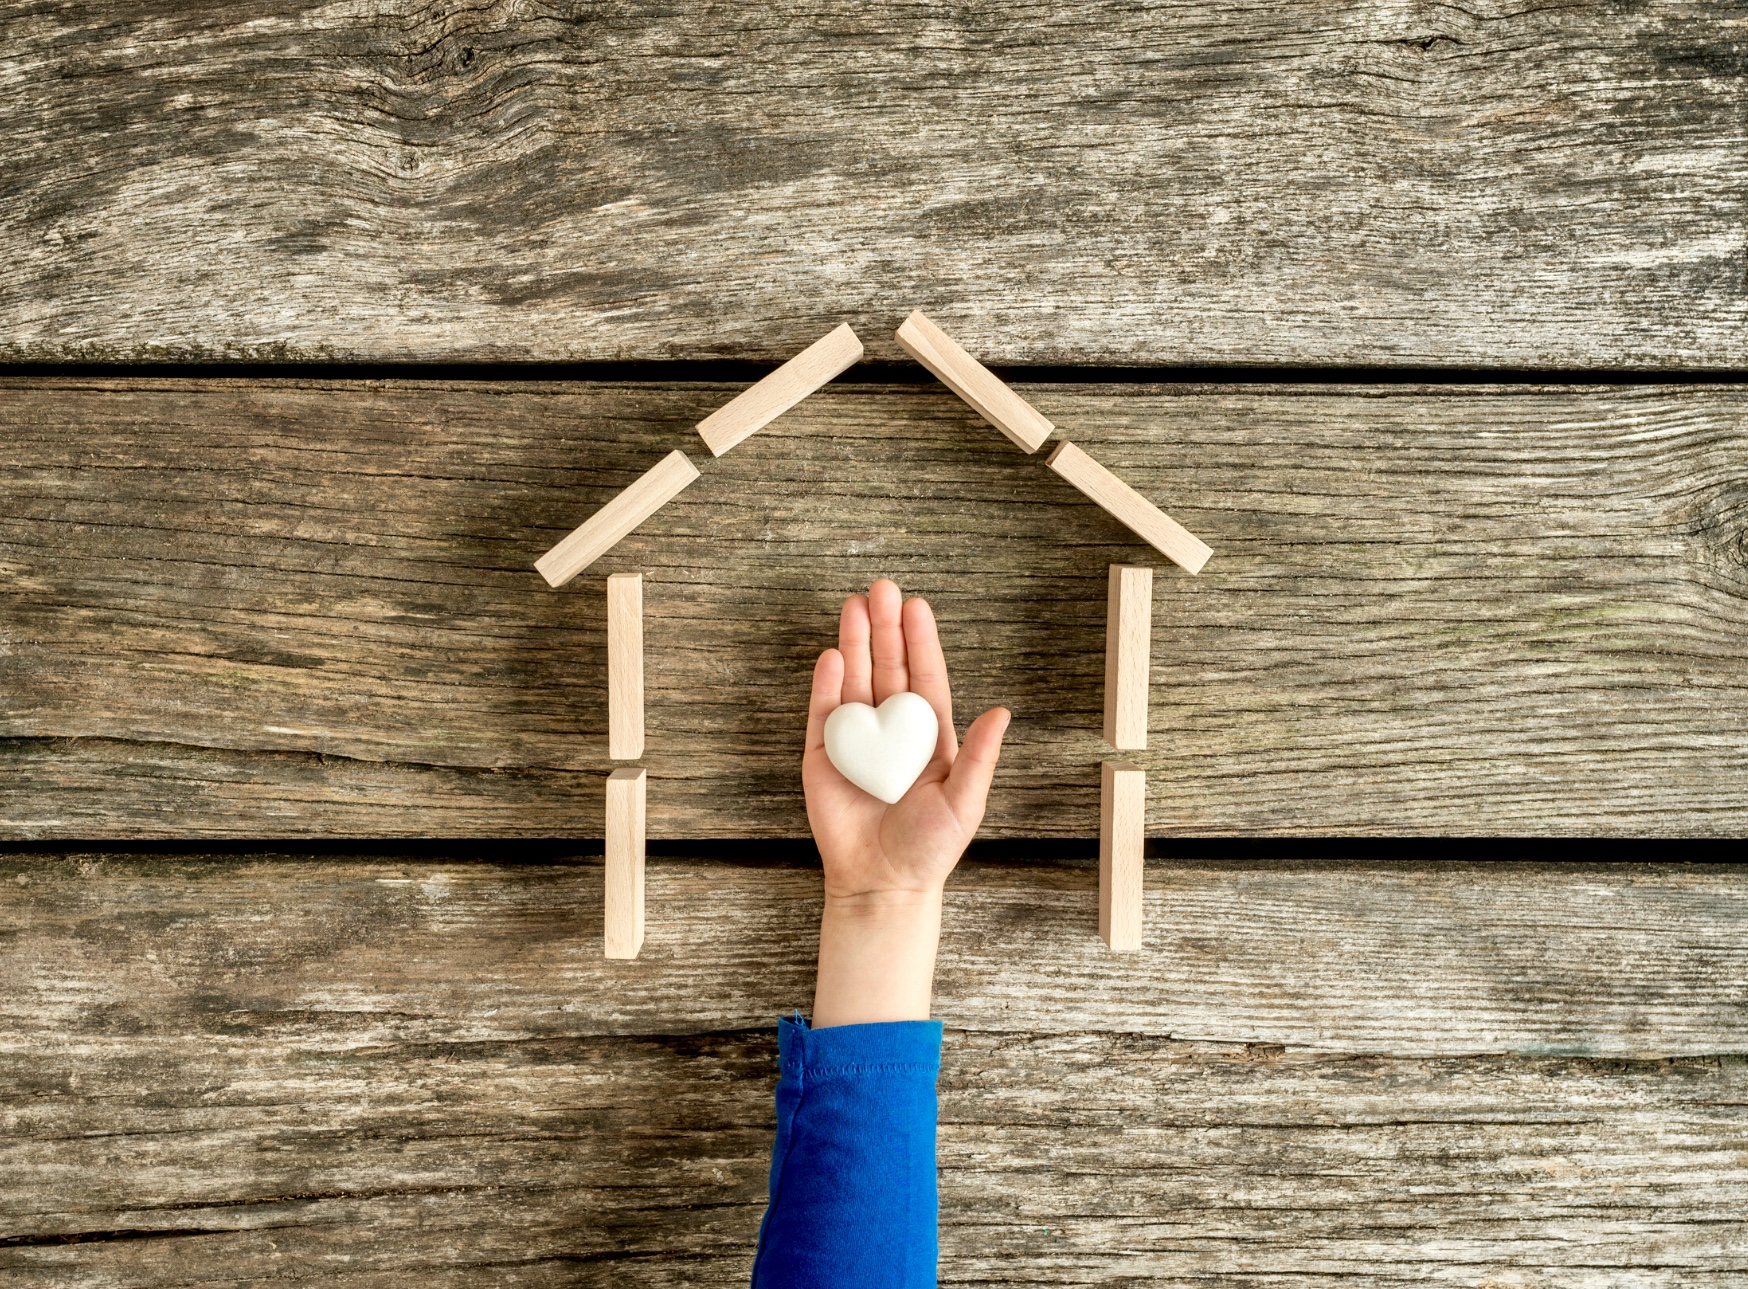 Child's hand holding a heart within the frame of a house.